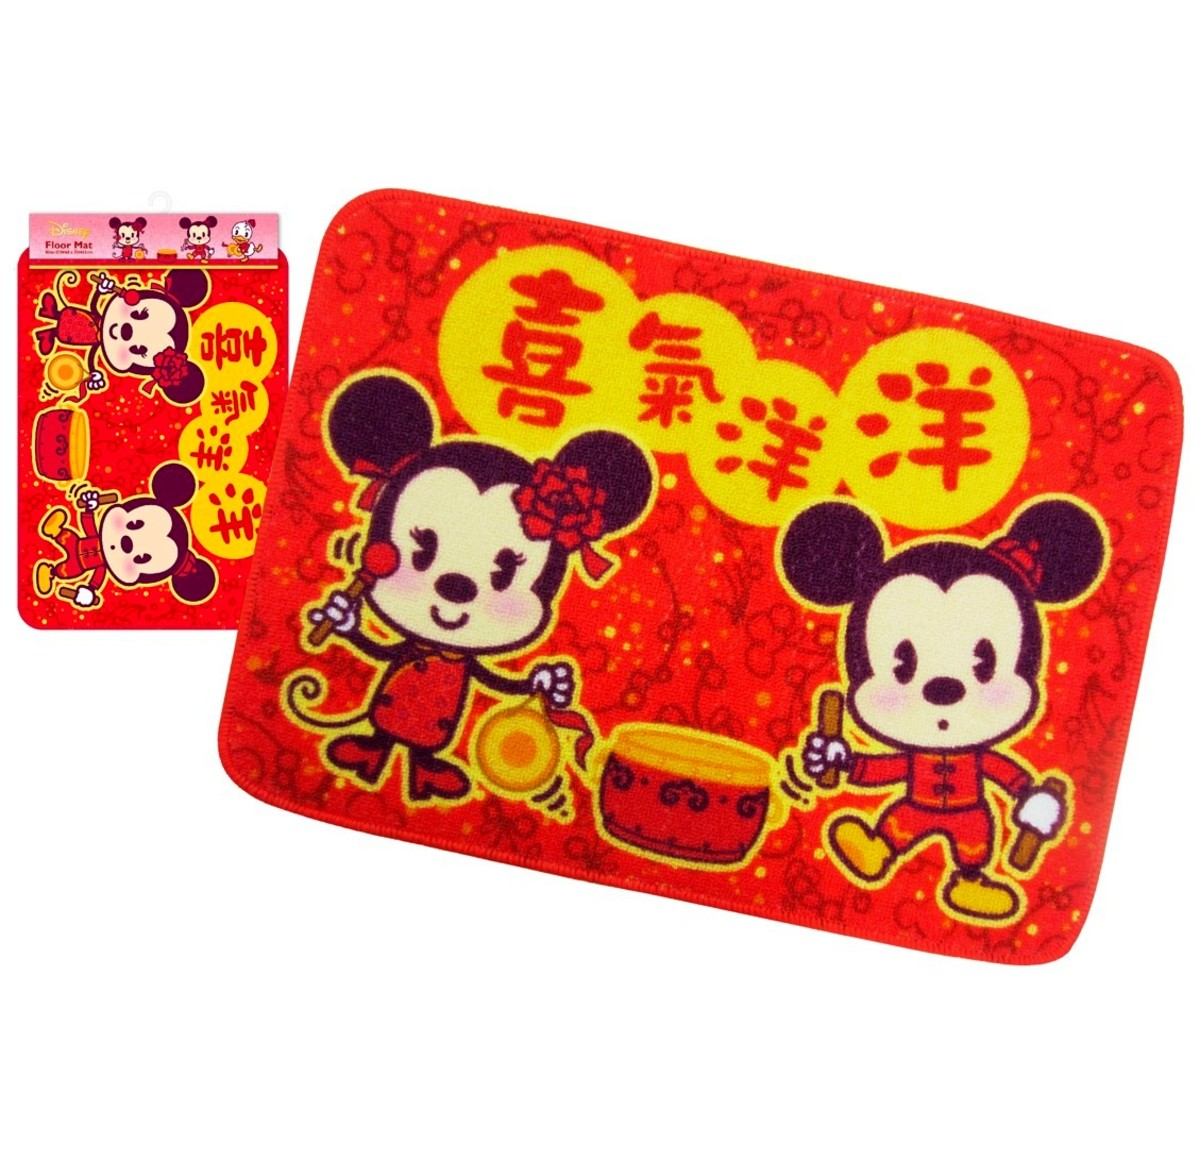 floor mat E (cny version) (Licensed by Disney)